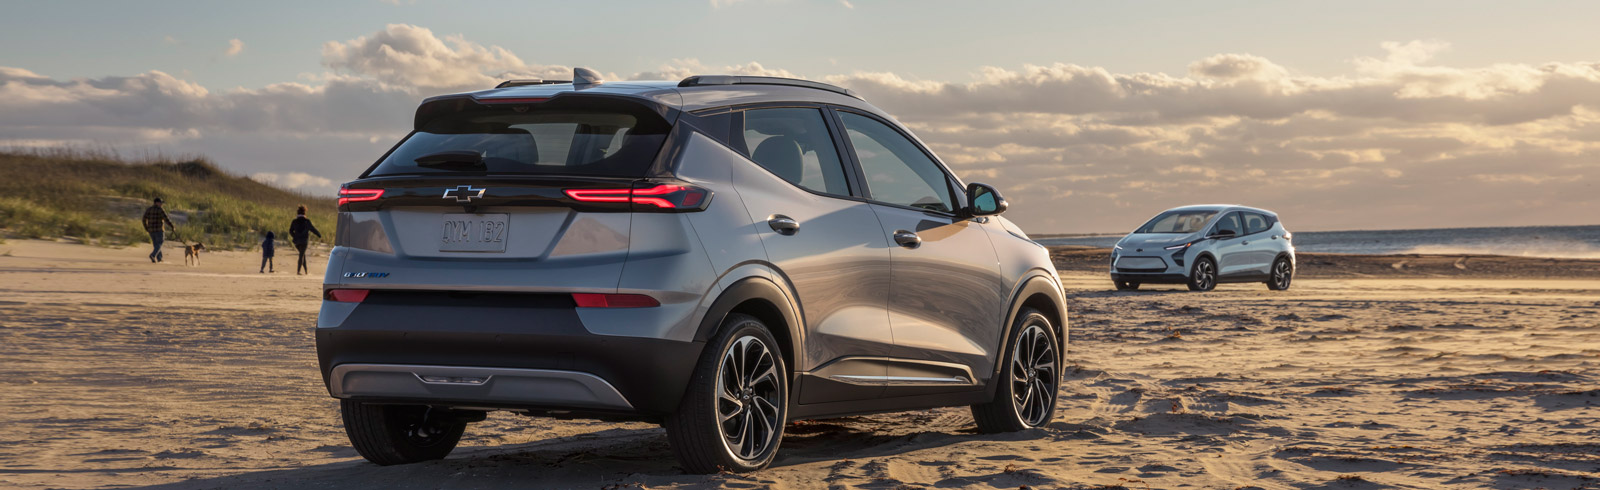 2022 Chevrolet Bolt EUV and Bolt EV go official - specifications and prices